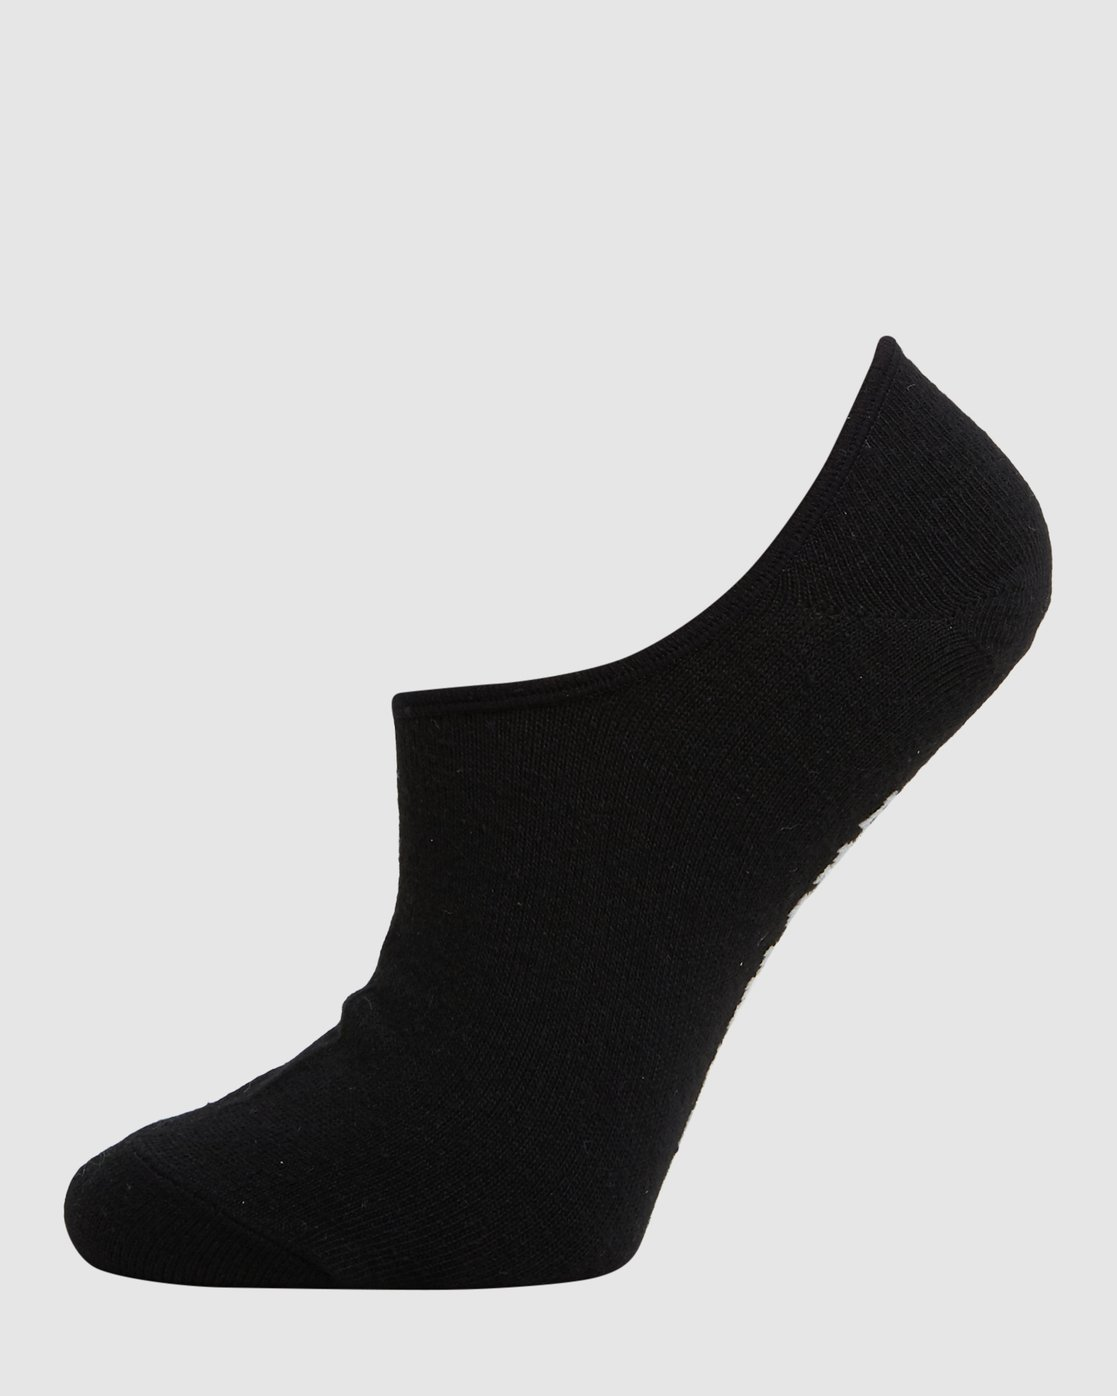 6 ELEMENT NUDIE SOCK 5 PACK Black 284653 Element